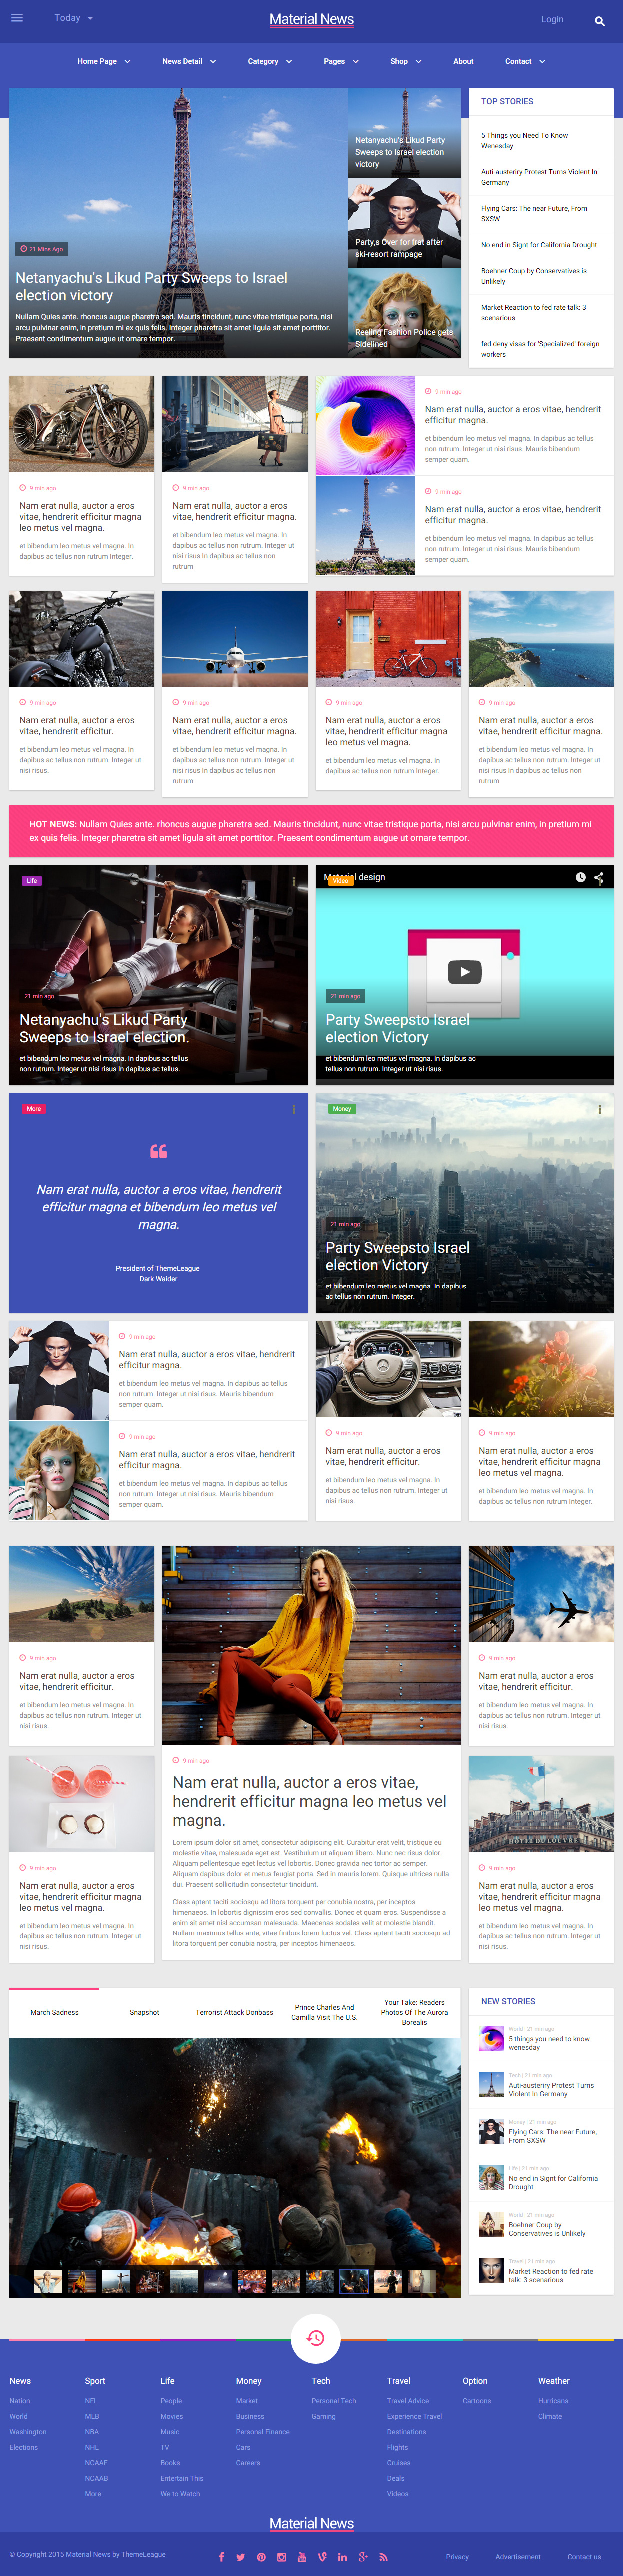 10 best responsive news and magazine html5 templates in 2015 0